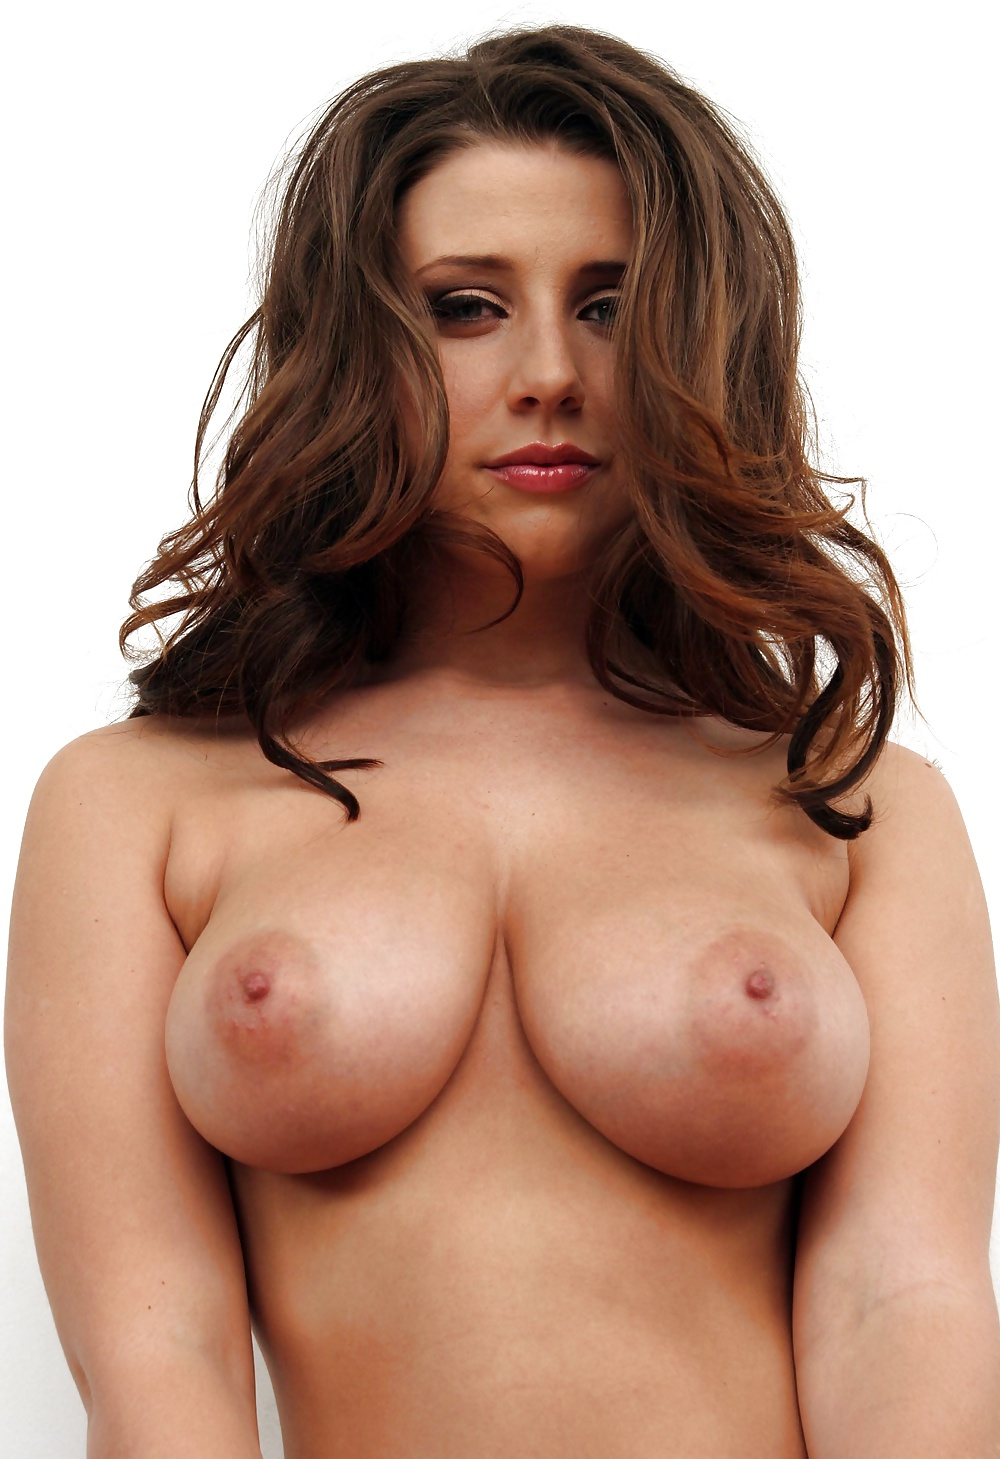 completely-nude-boobs-inserting-vibrator-in-penis